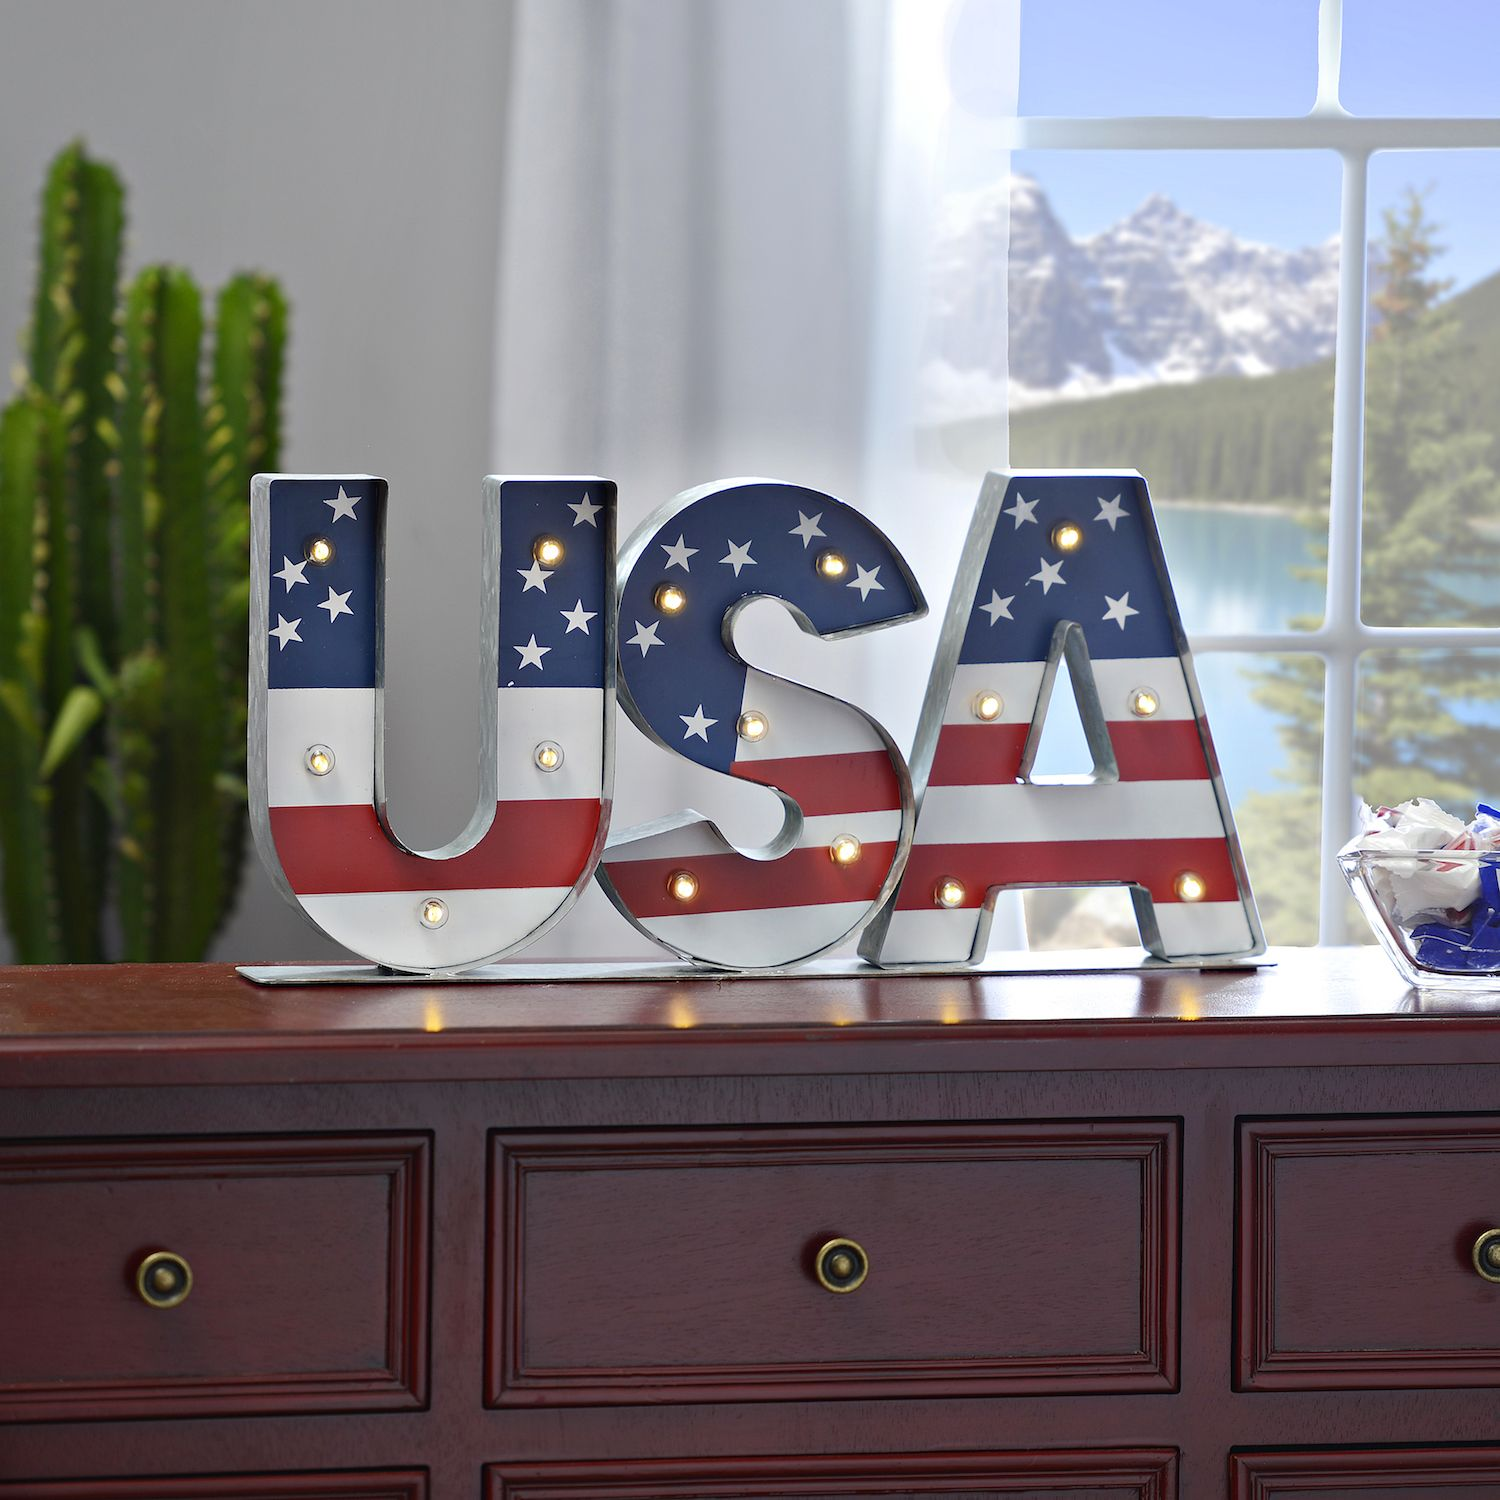 Get ready for this 4th of July season by showing off your glowing patriotism. This USA table top sign is made of metal and features pre-lit LED bulbs across red, white, and blue flag details. It's the perfect patriotic touch for your entryway or bookshelf this summer!